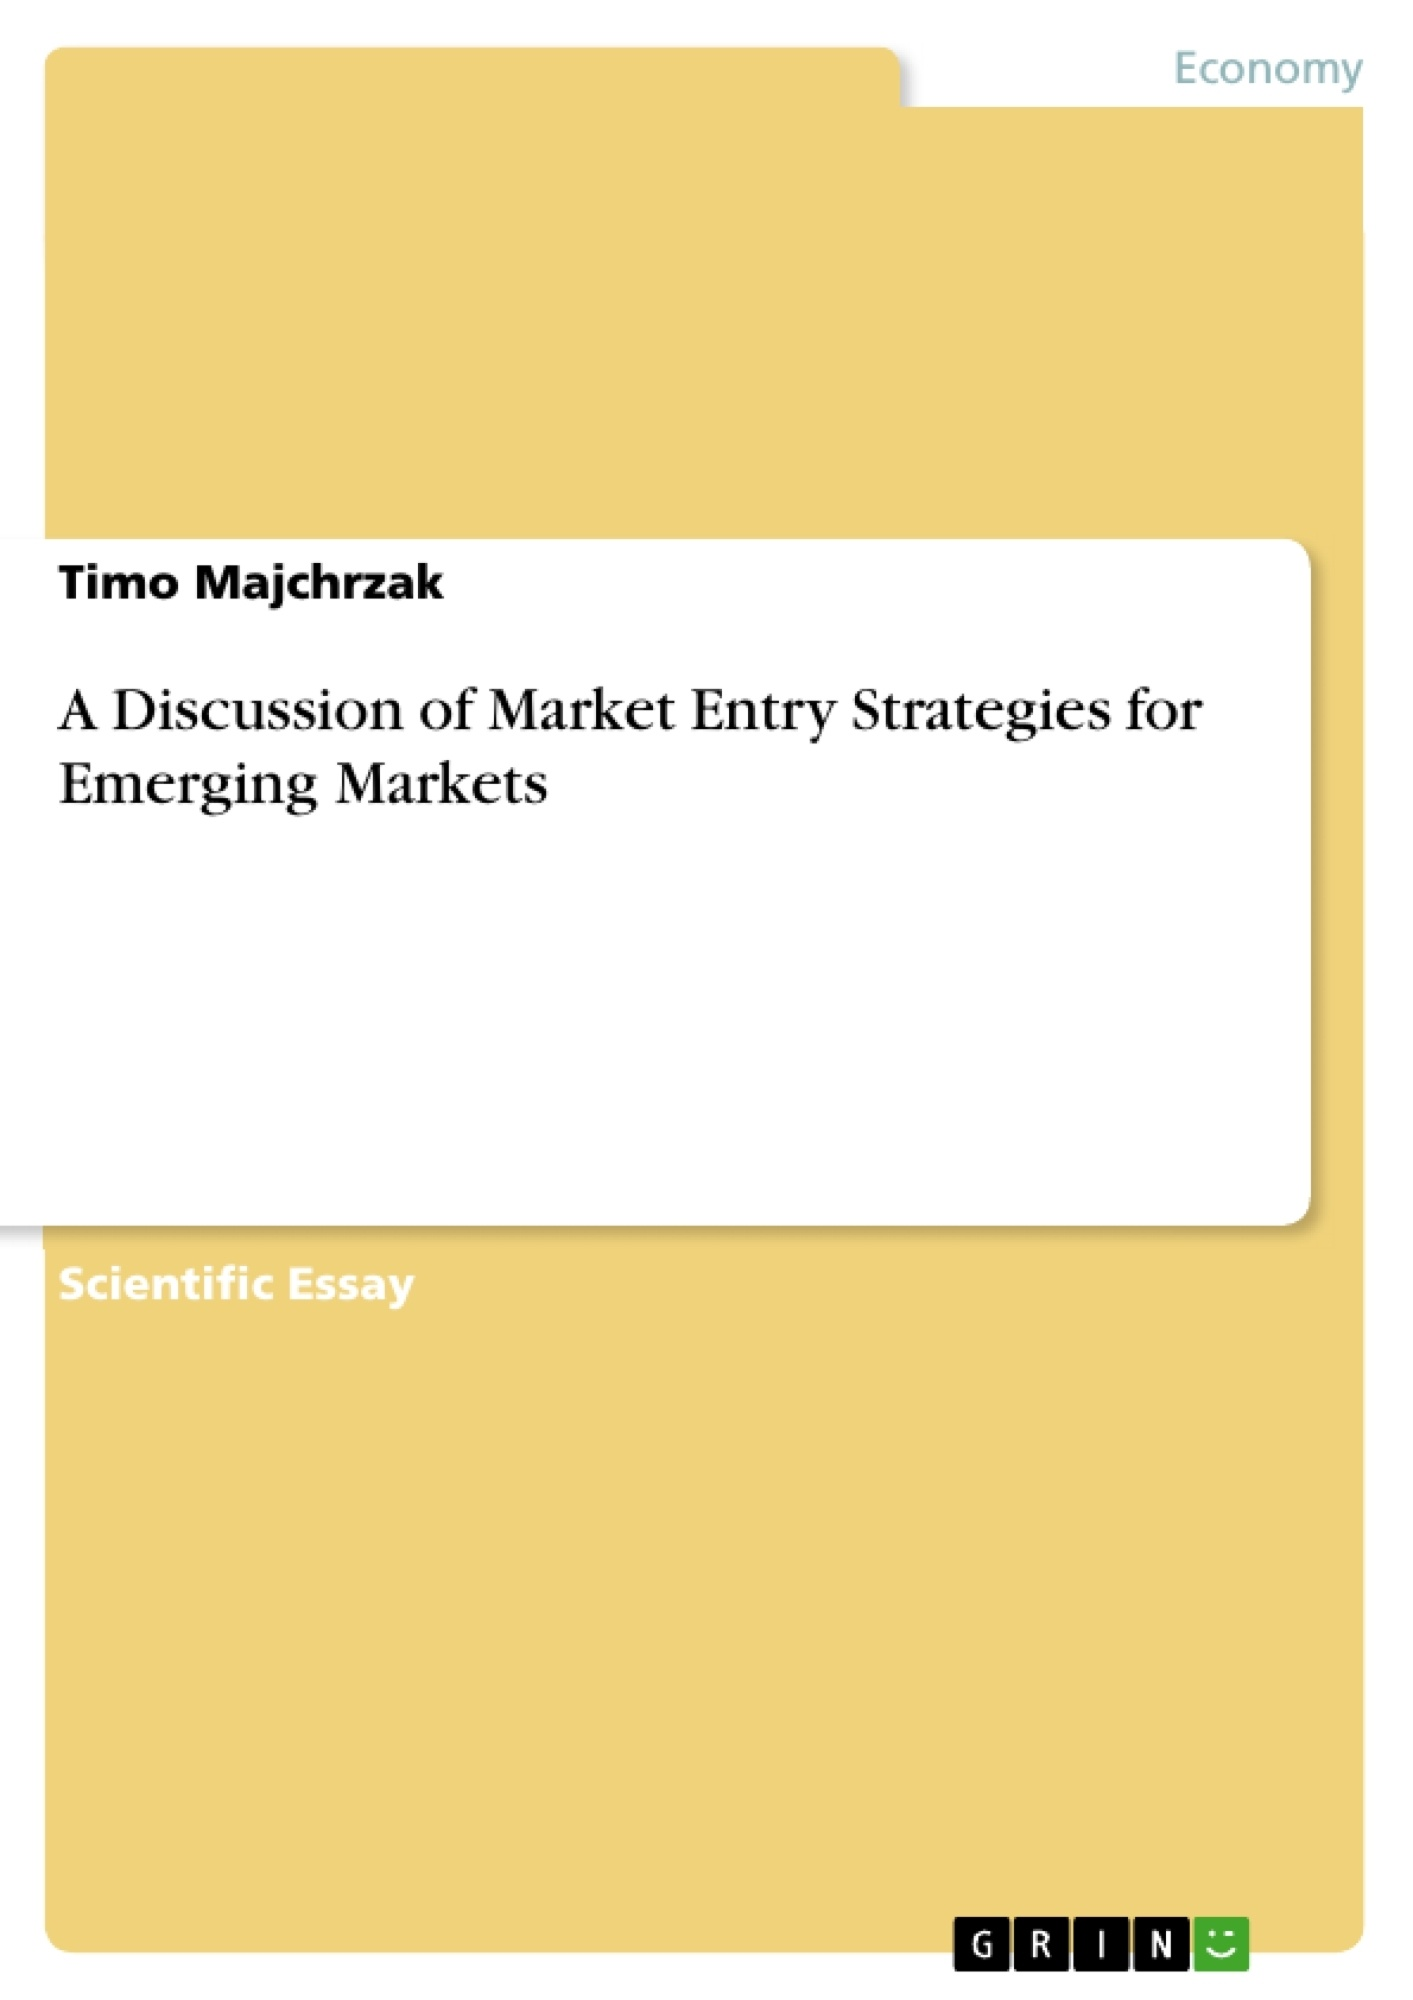 Title: A Discussion of Market Entry Strategies for Emerging Markets